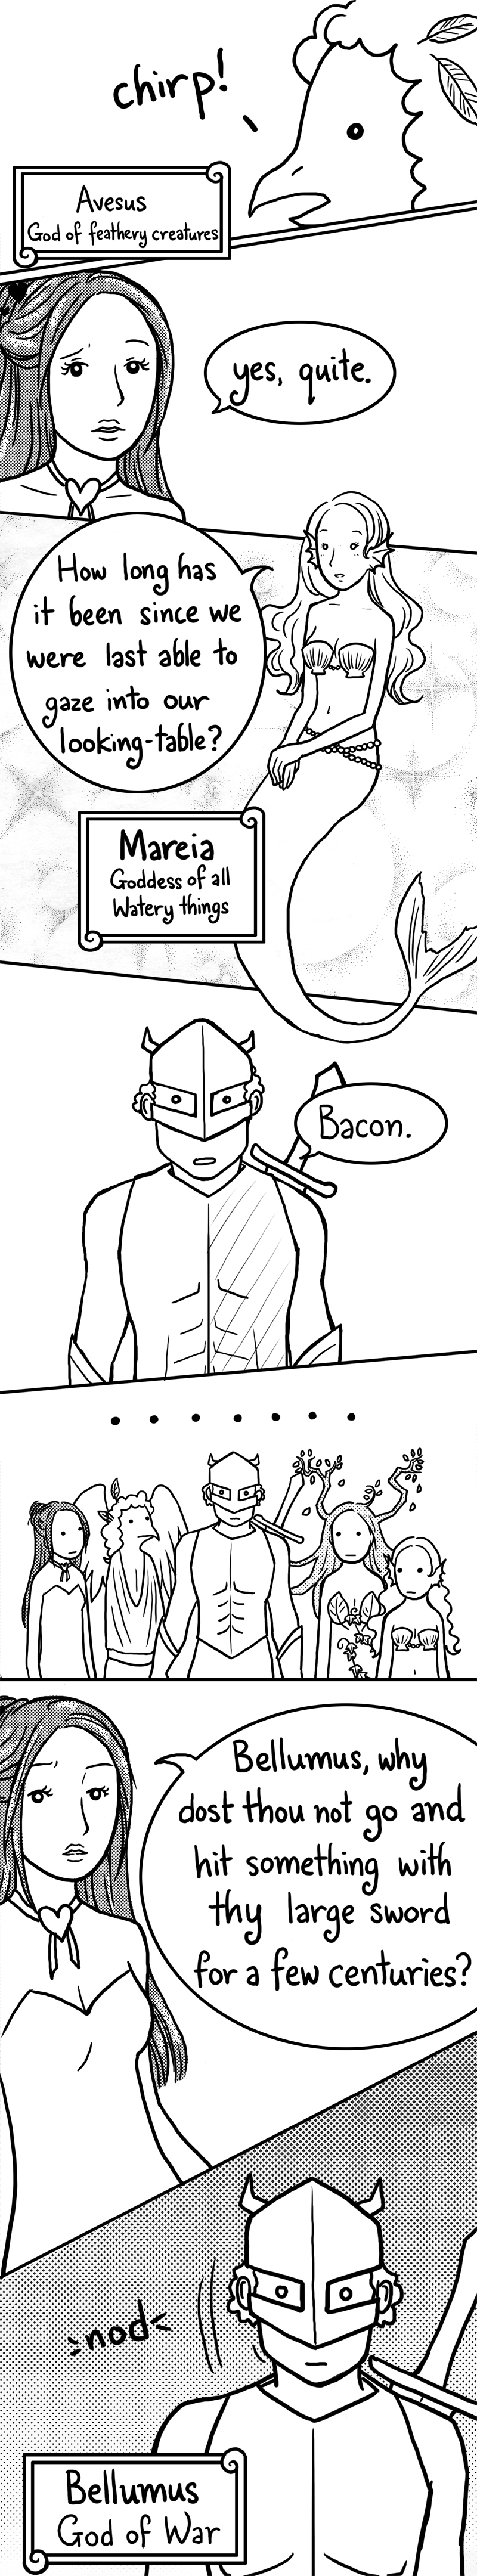 comic-2011-09-13-Bacon.jpg